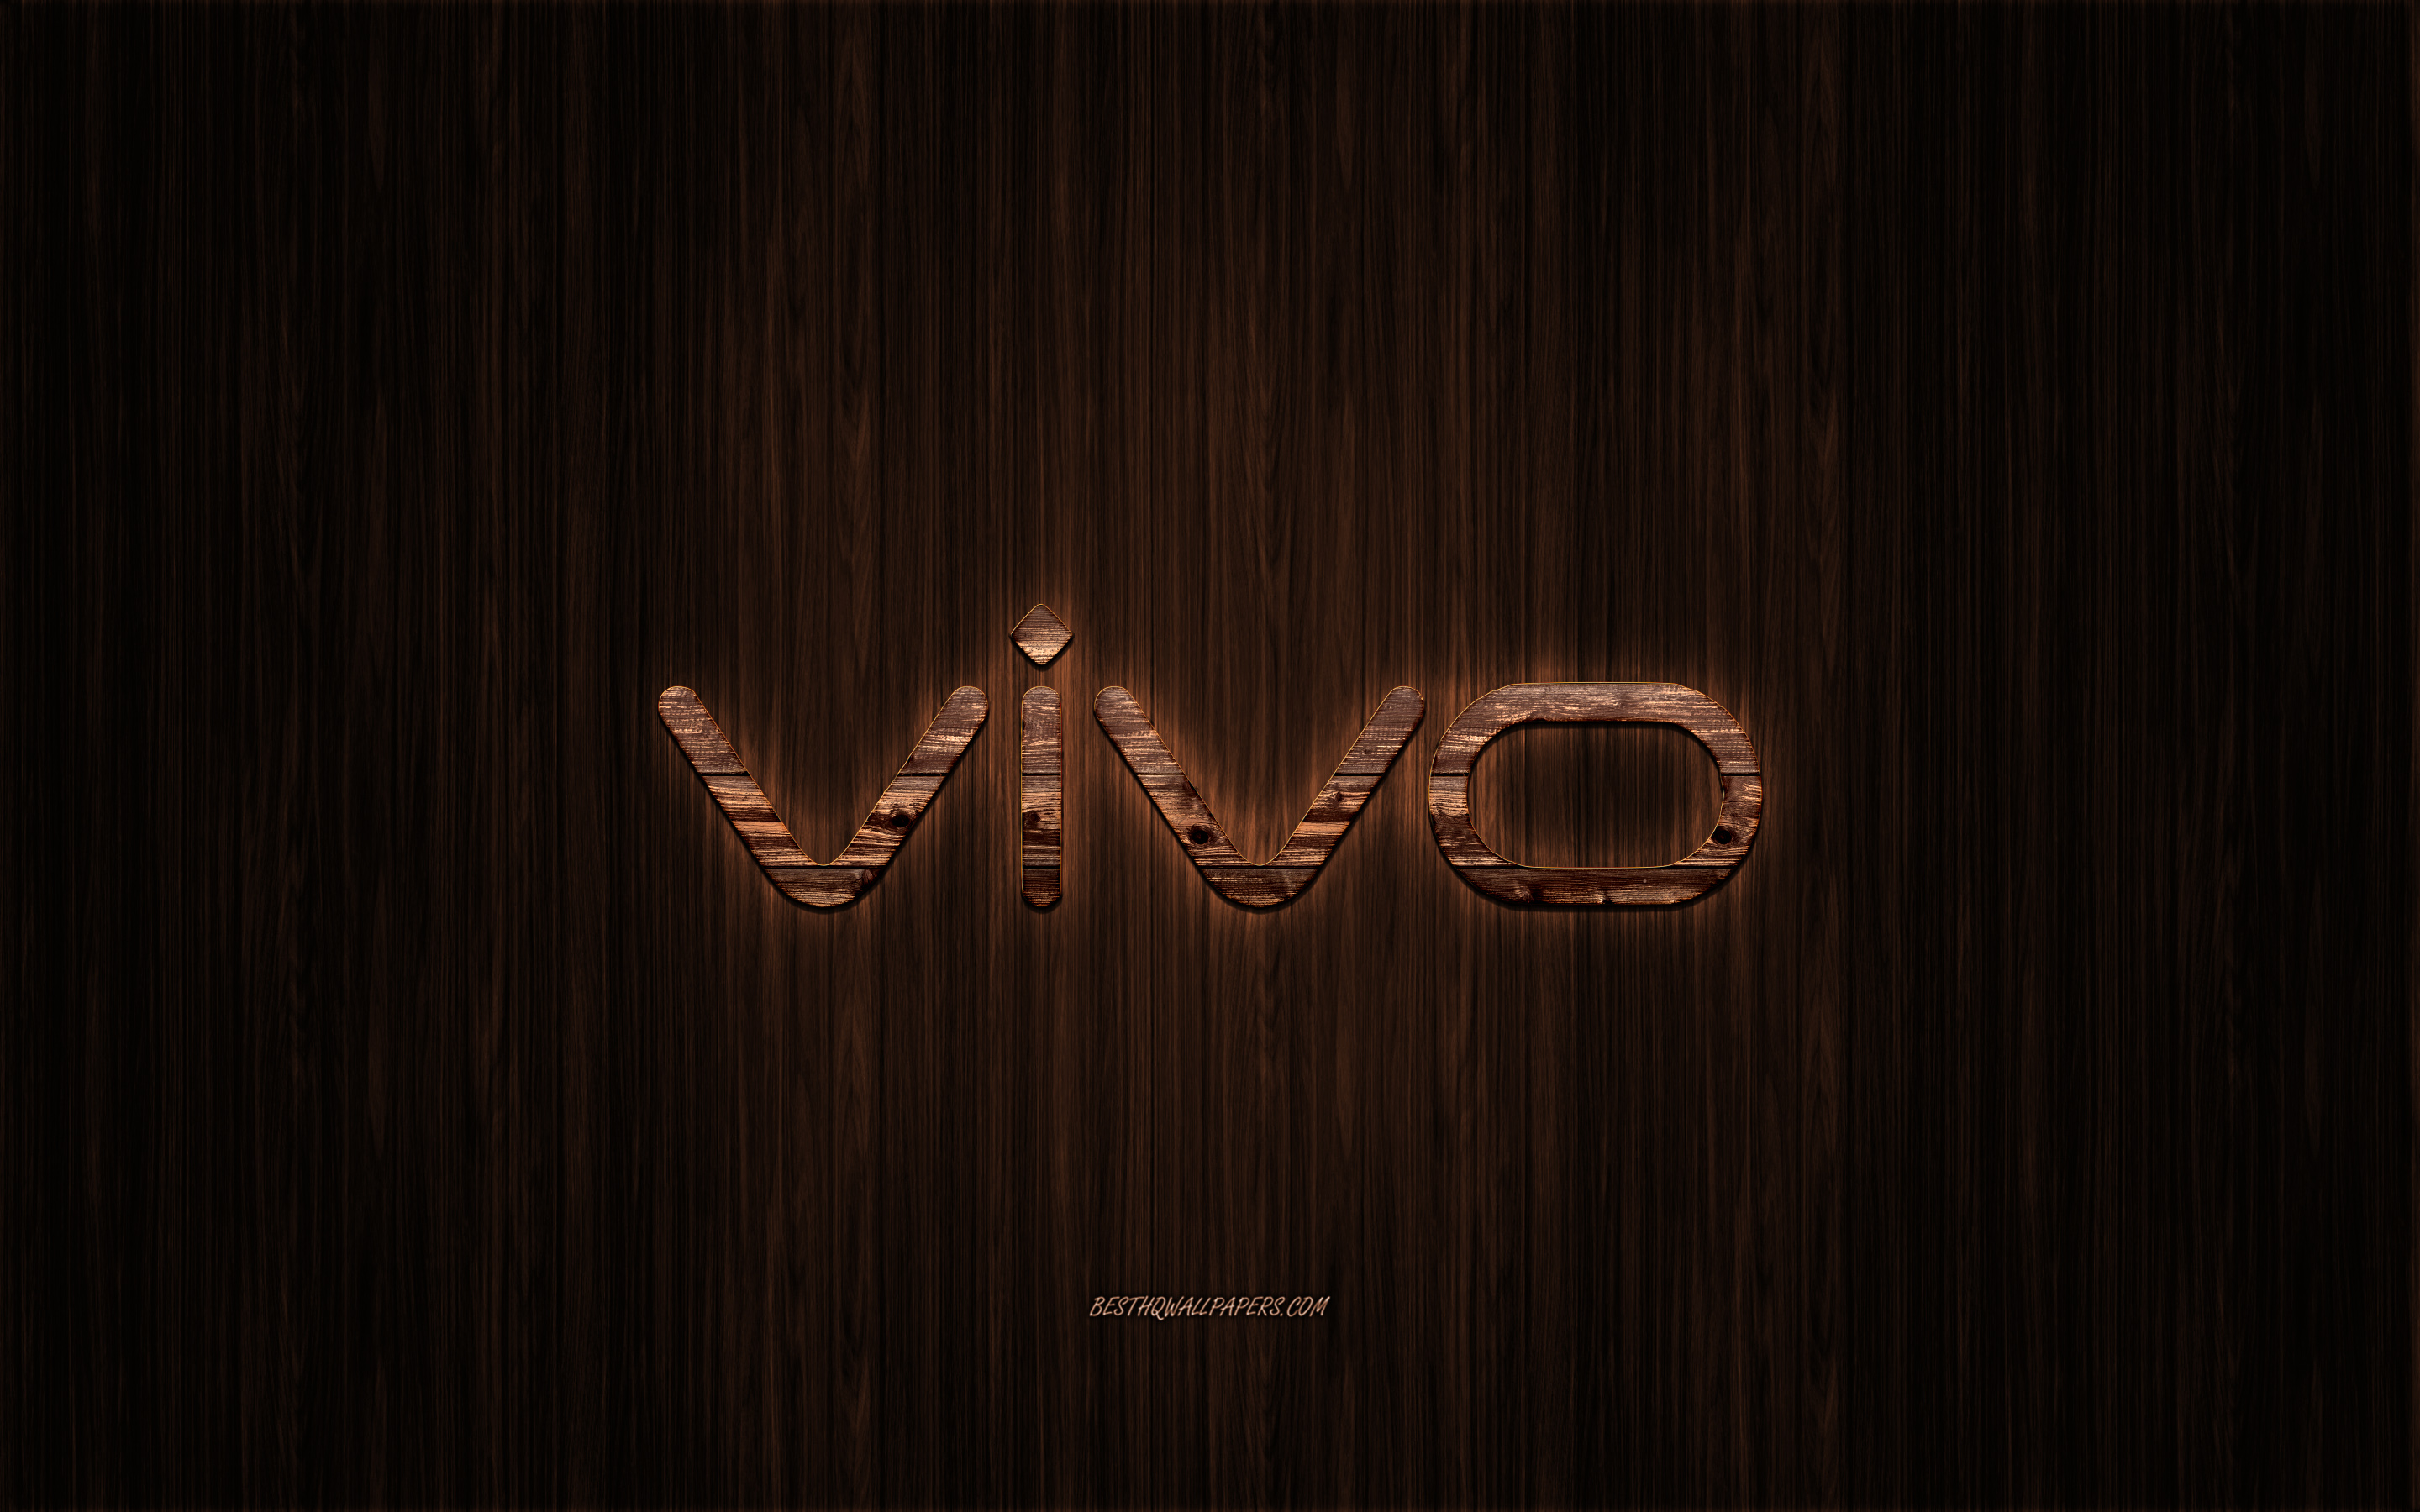 Vivo logo, wooden logo, wooden background, Vivo, emblem, brands, wooden art